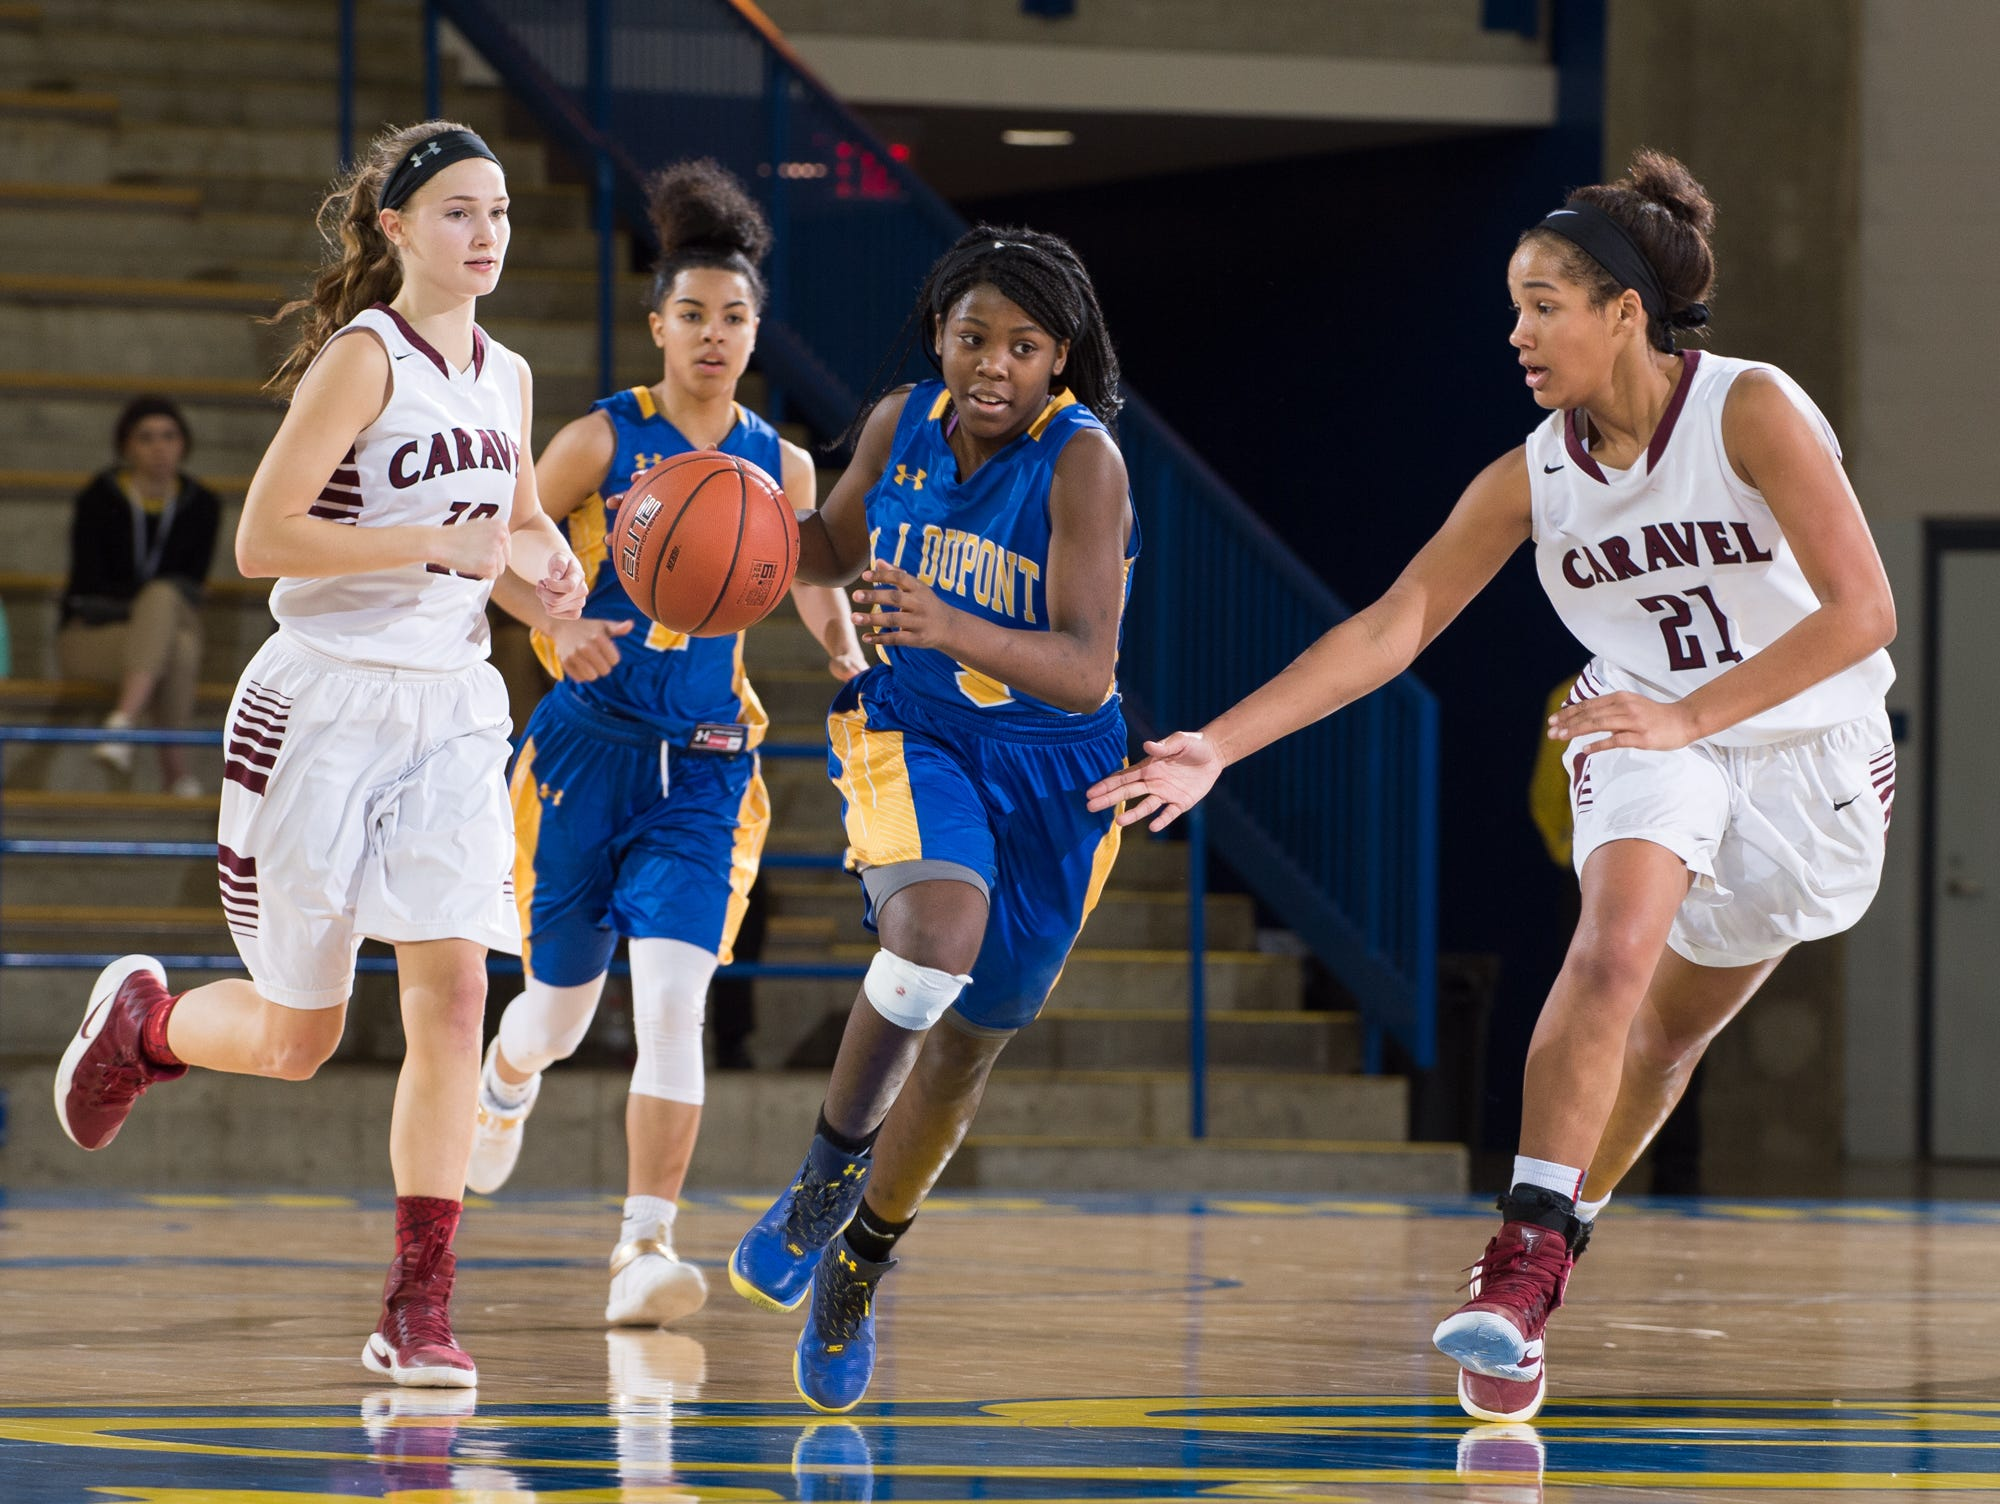 A.I. duPont's Ber'Nyah Ward-Mayo (3) dribbles down the court in the quarterfinals of DIAA Girls Basketball Tournament at the University of Delaware against Caravel.